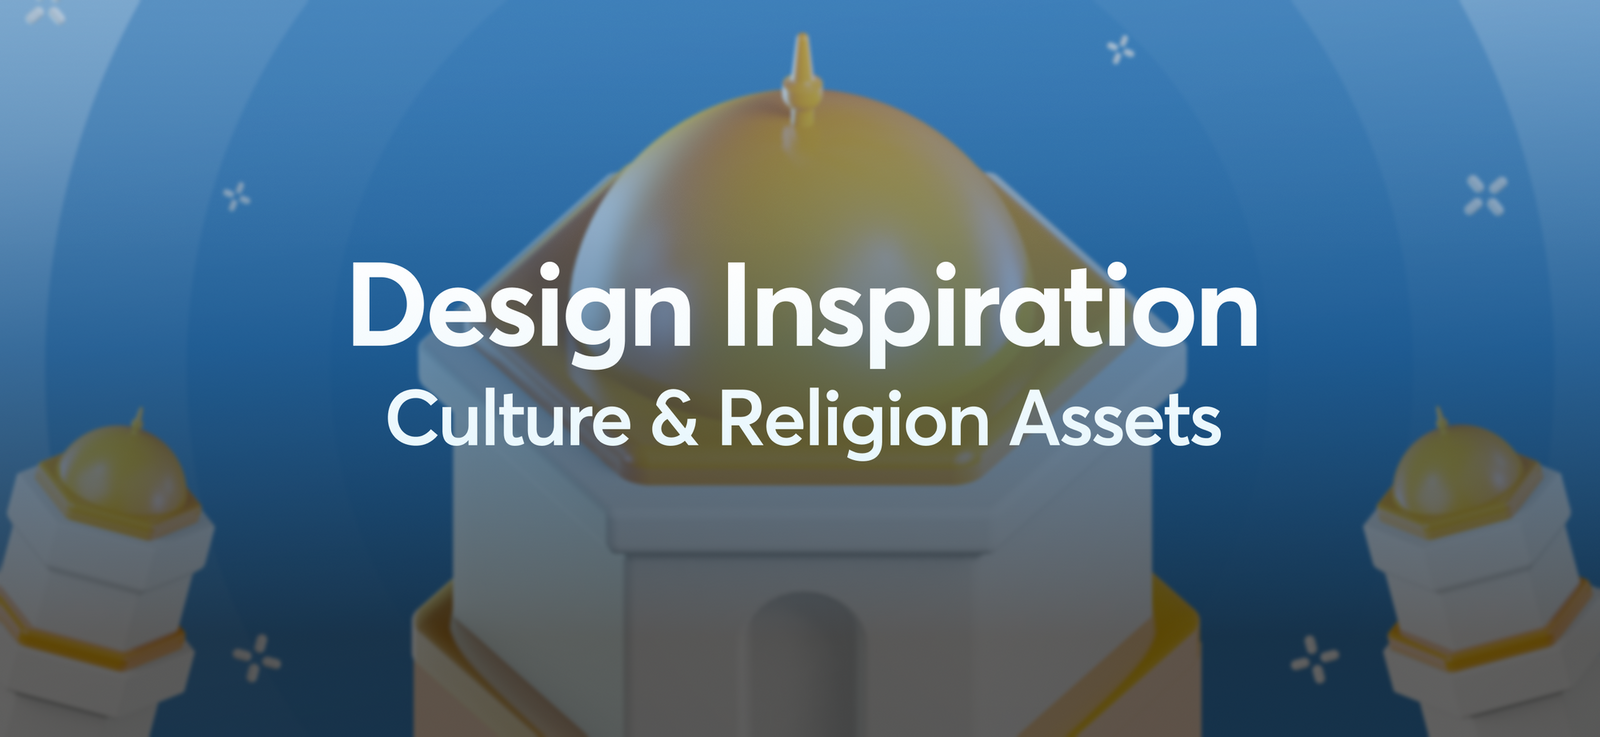 Weekly Design Inspiration - Culture & Religion